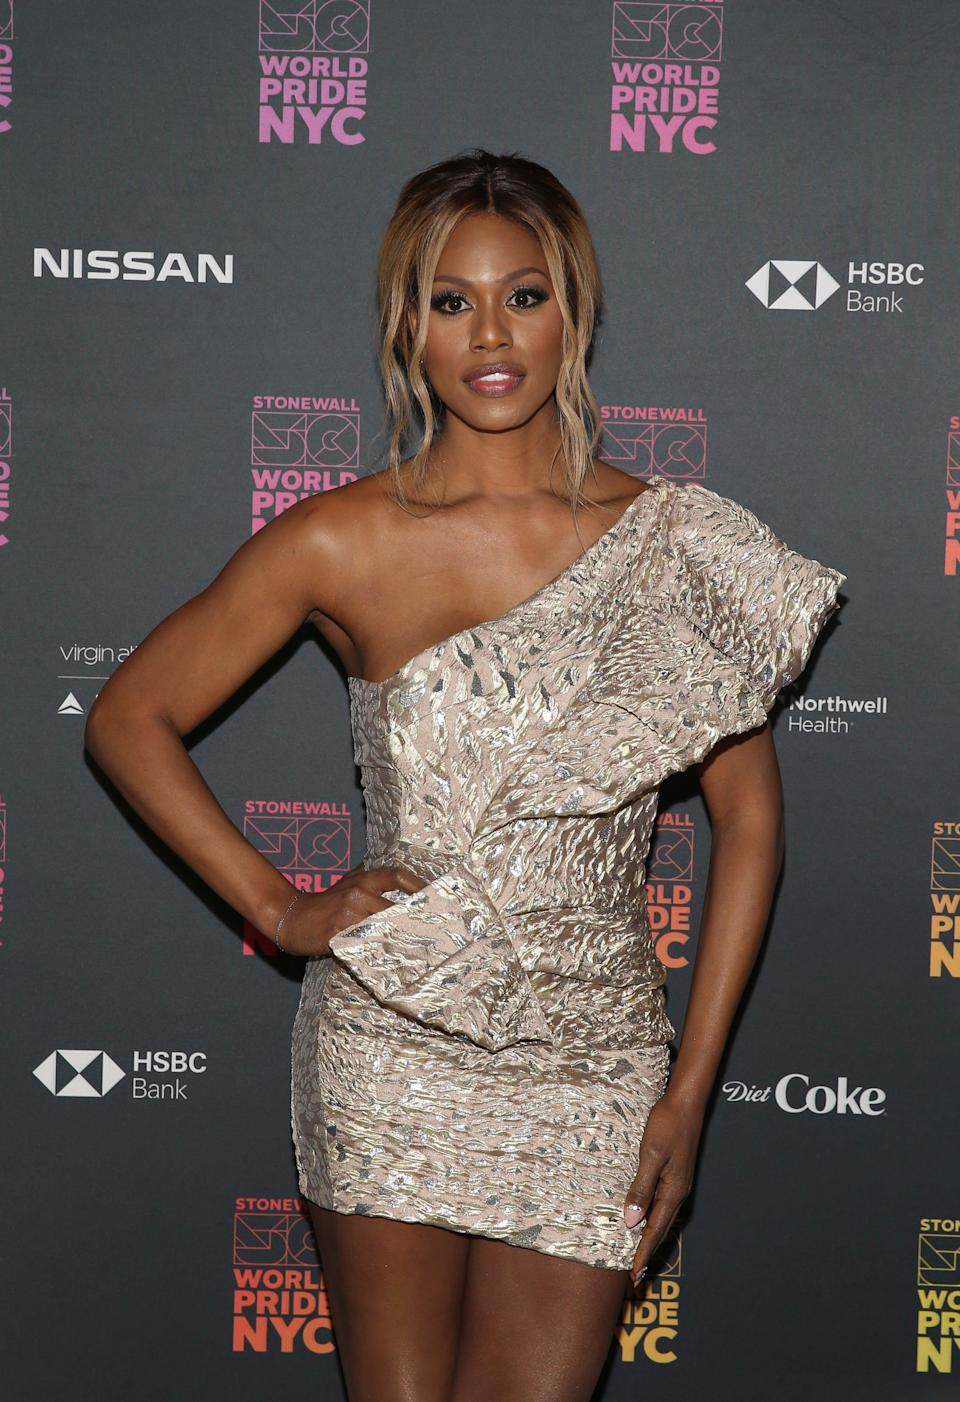 Laverne Cox attends the WorldPride NYC 2019 opening ceremony.